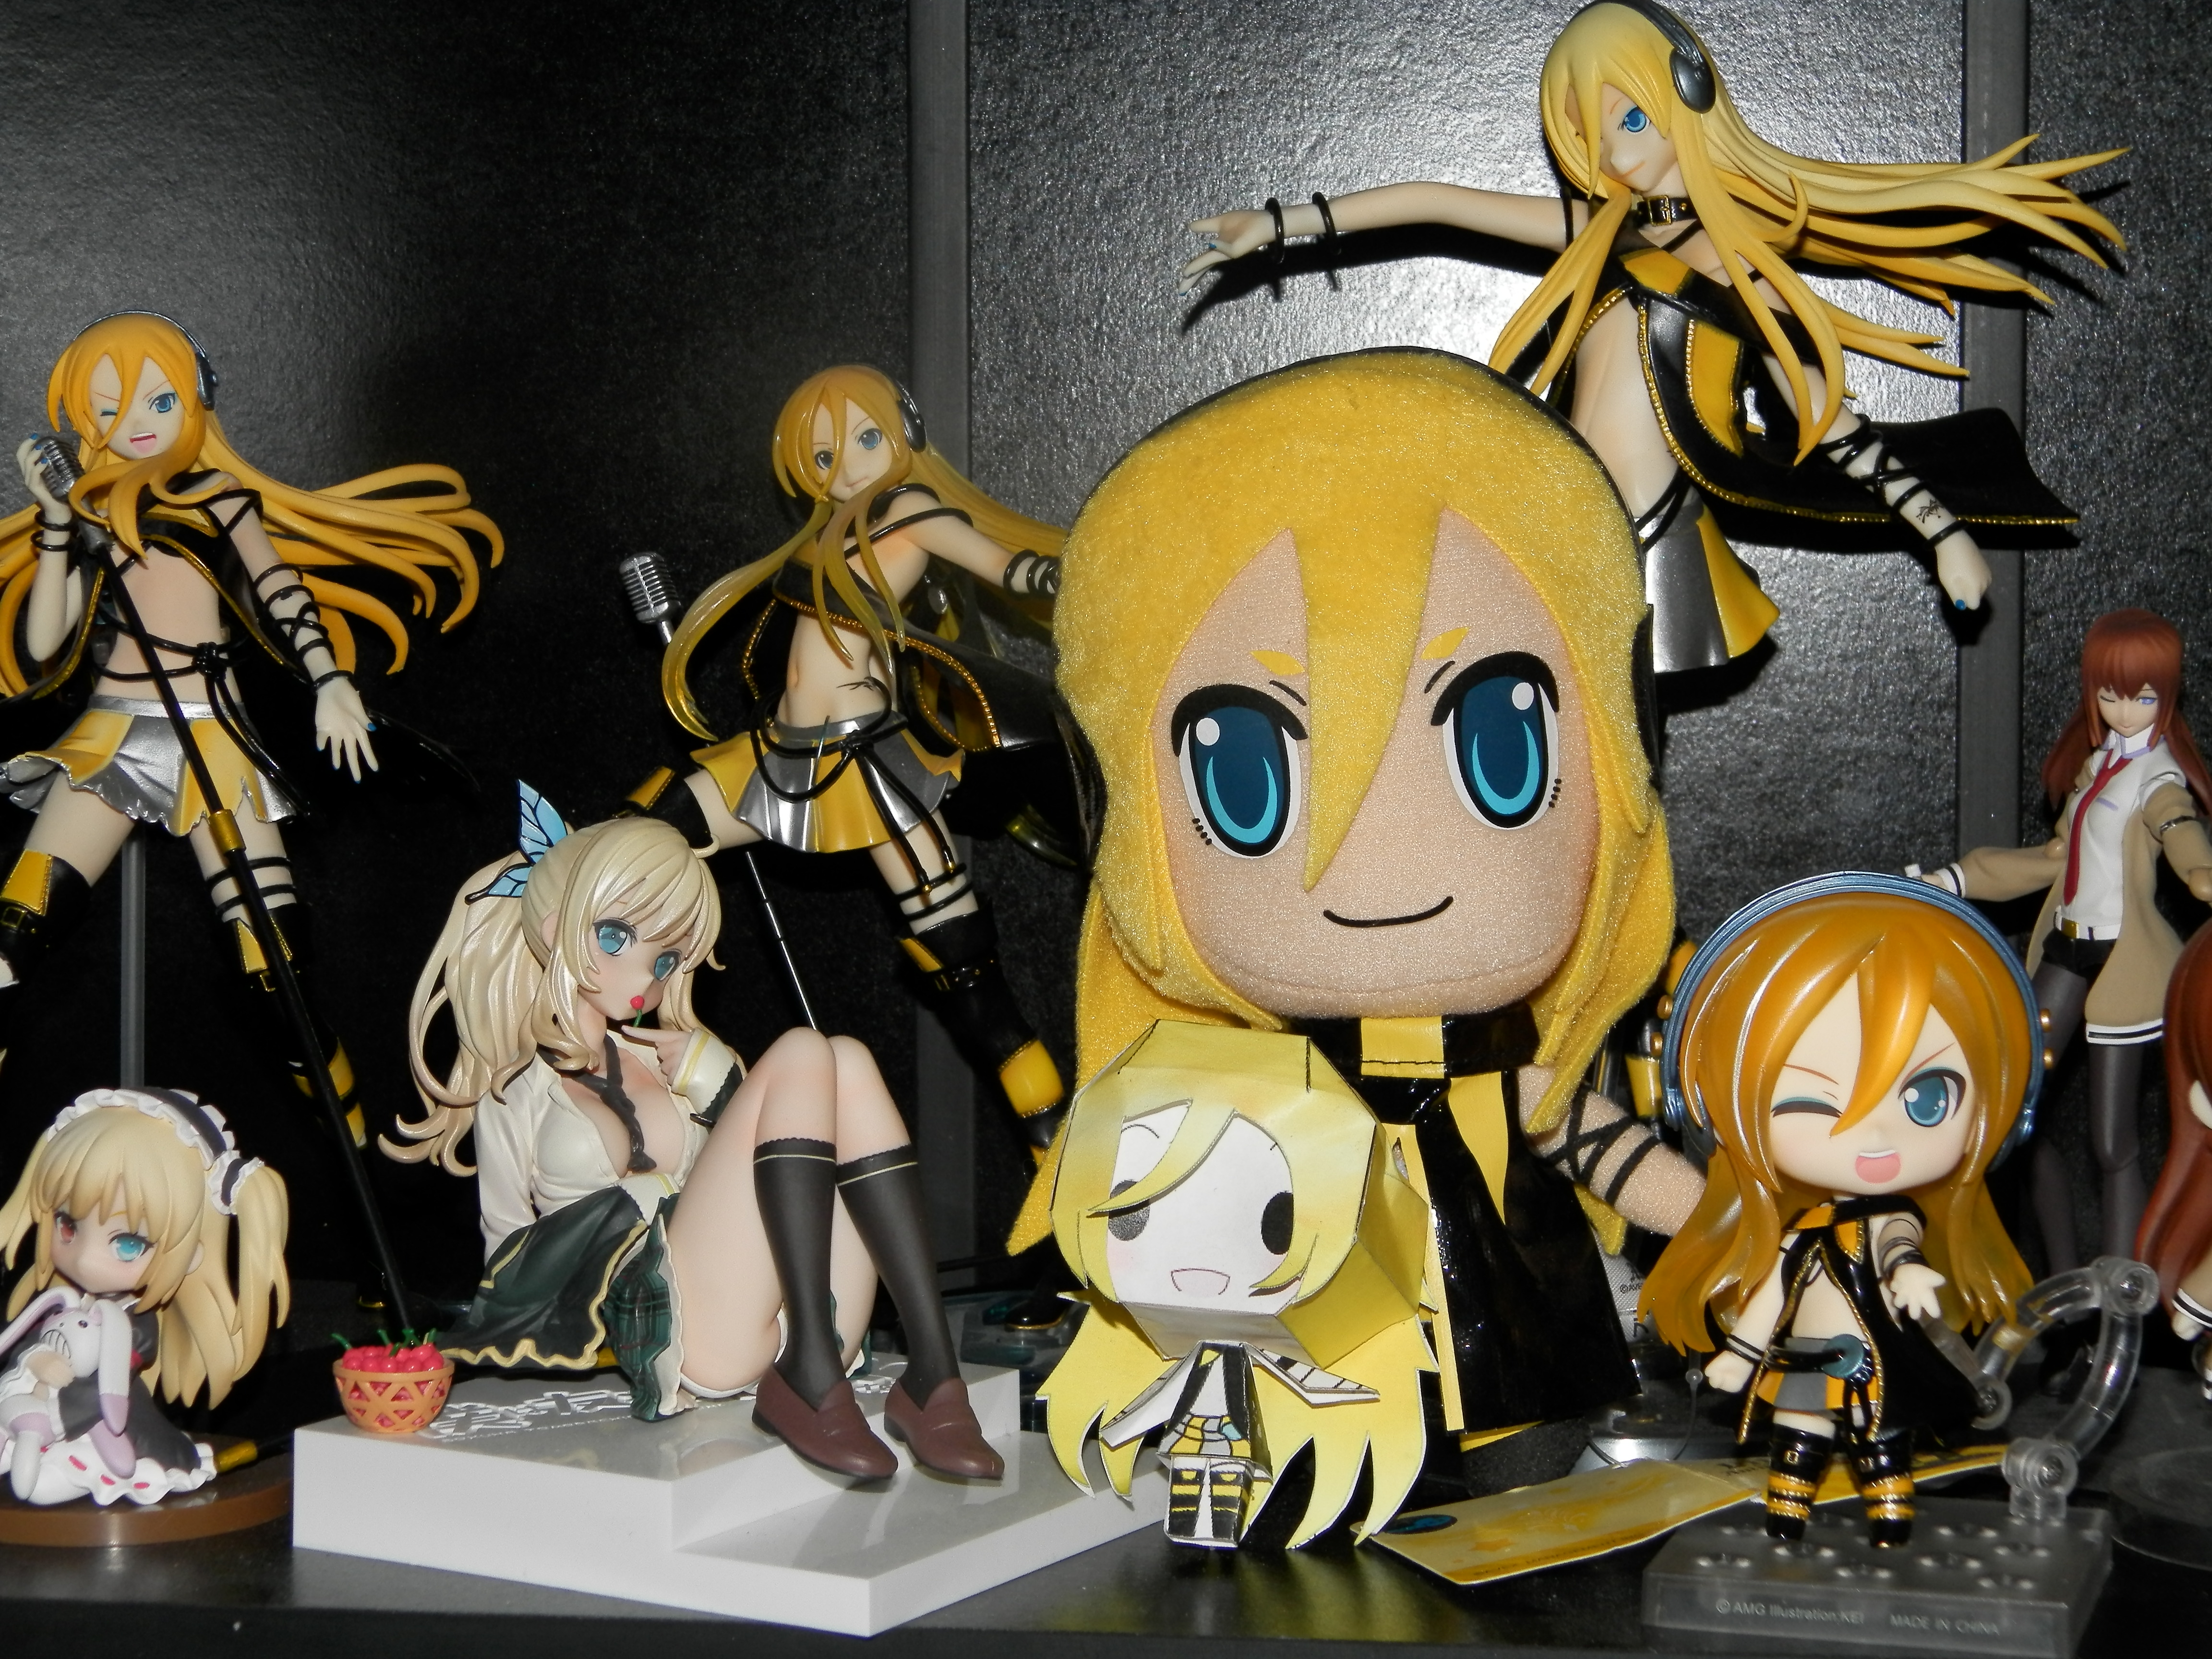 ALL THE LILY FIGURES By Douirotoaoiro